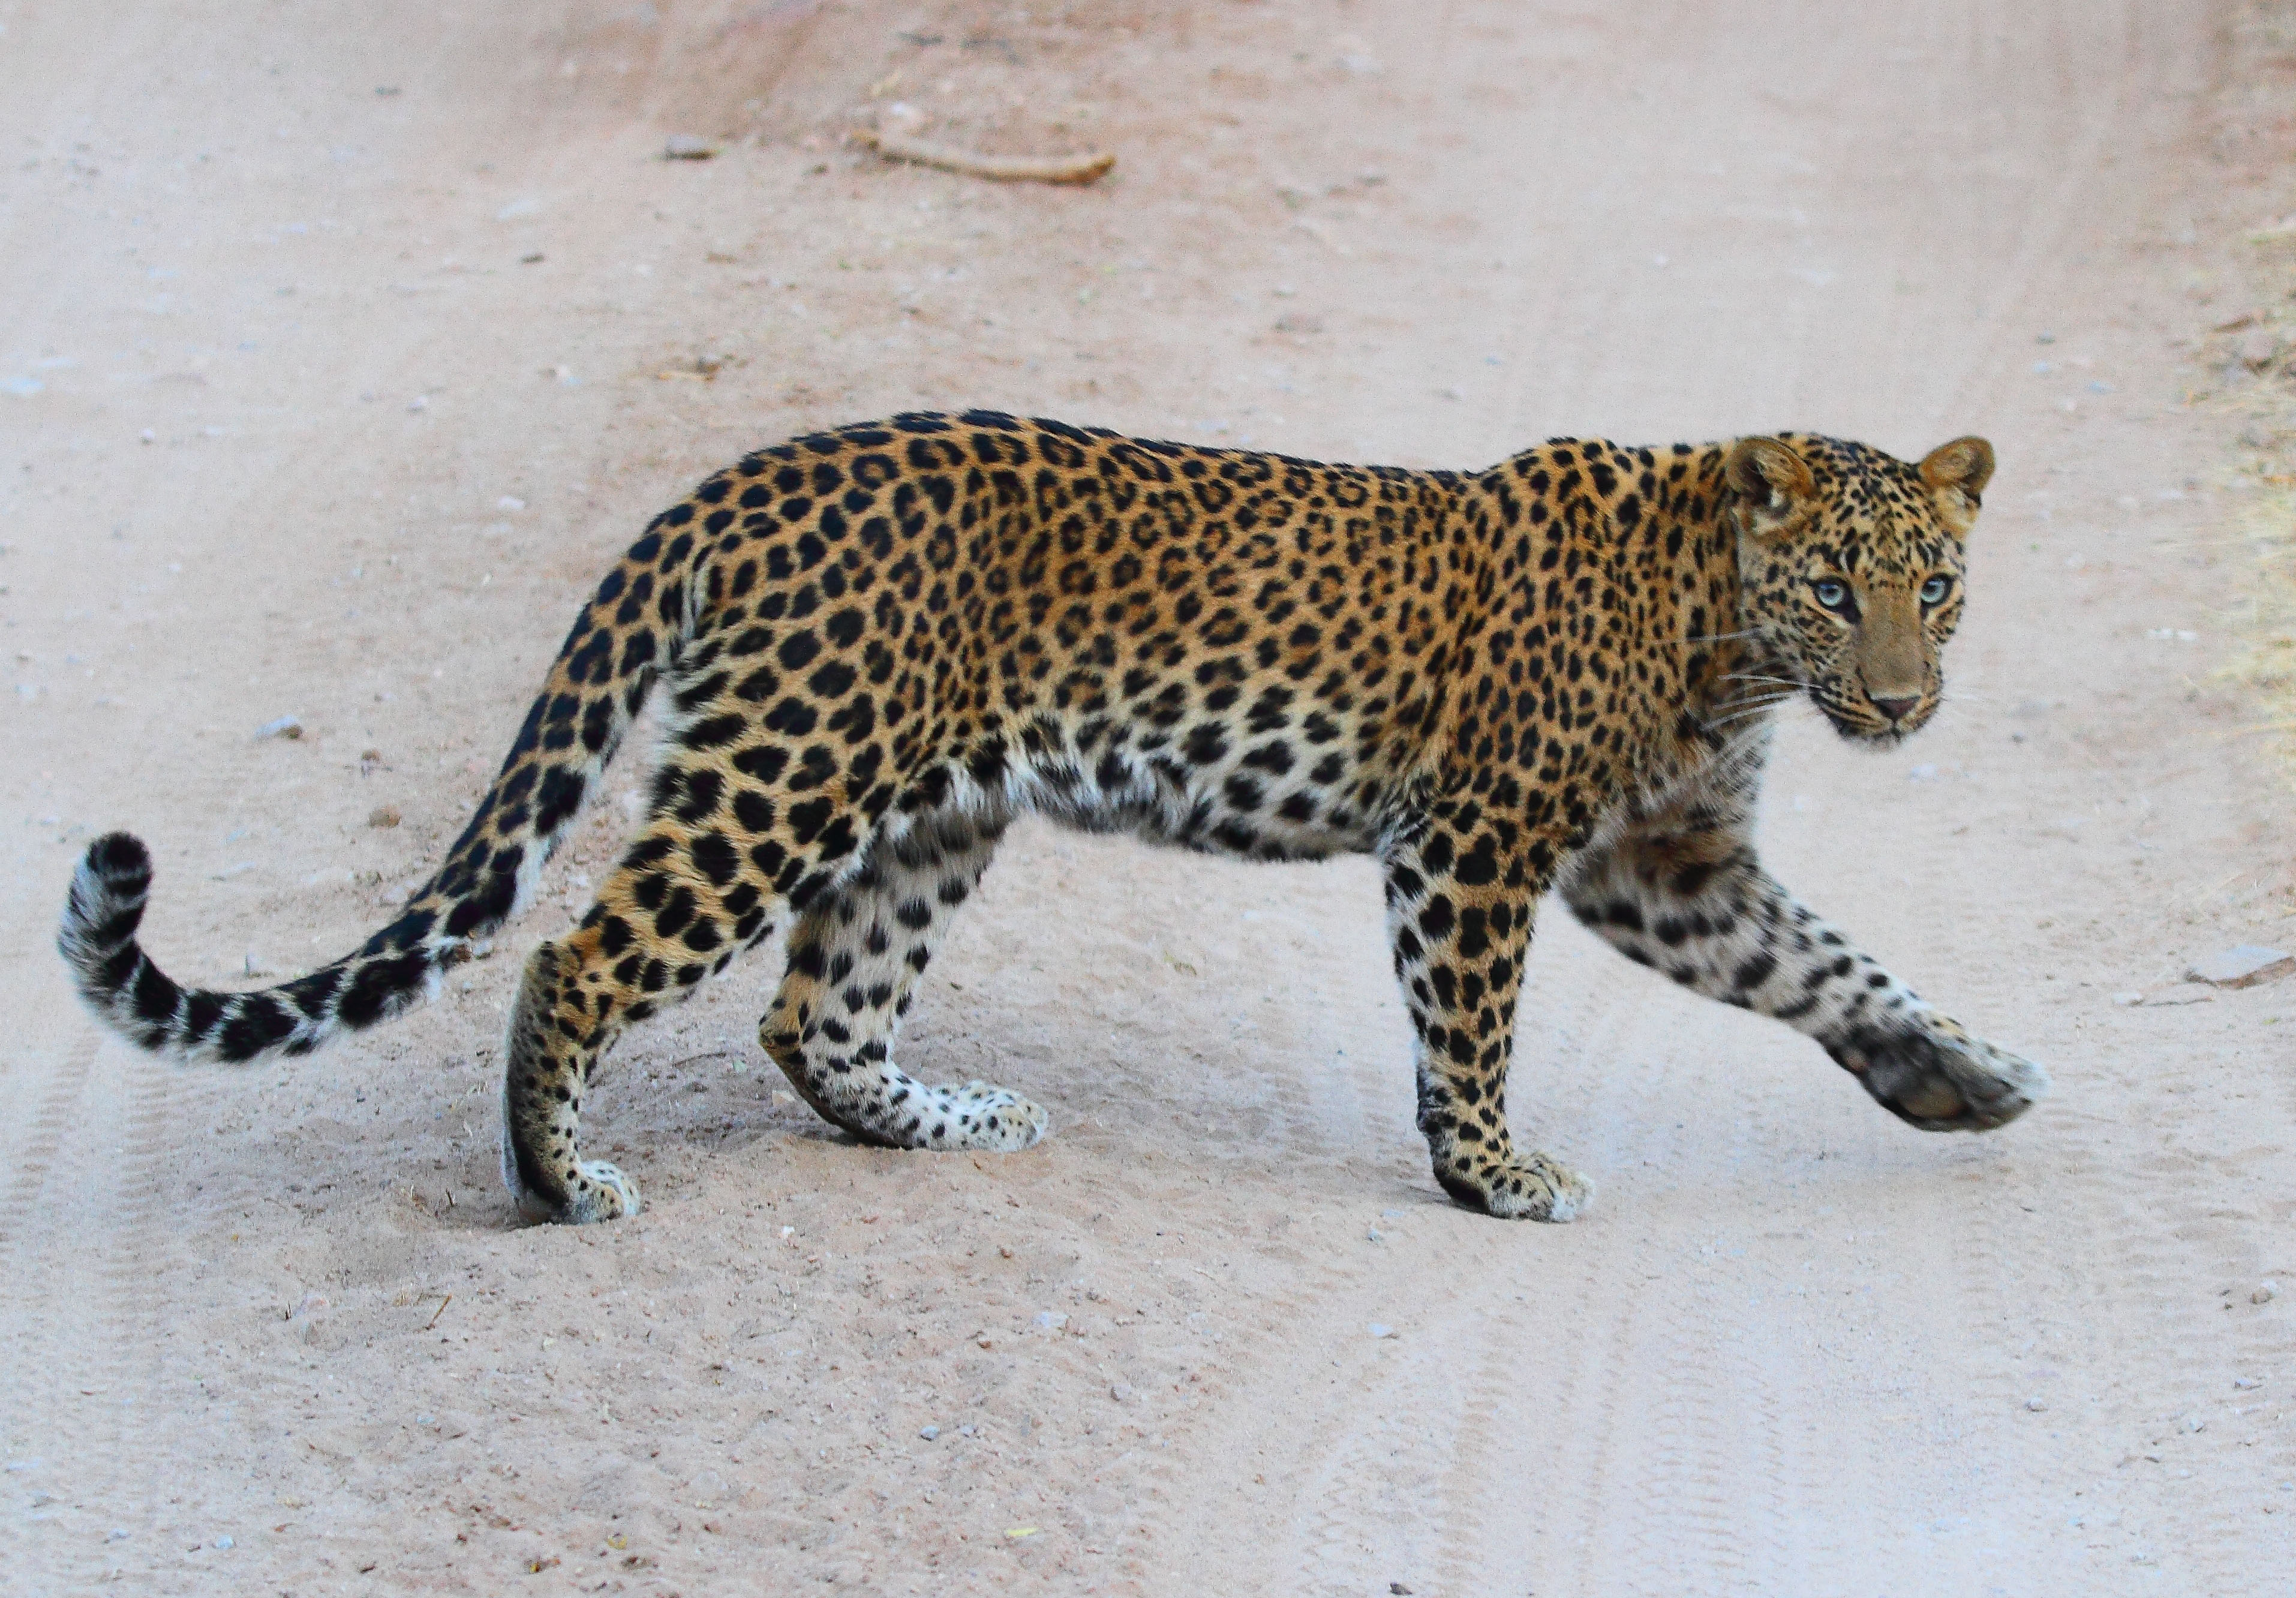 Leopard expansion and movement towards the Thar Desert of Rajasthan